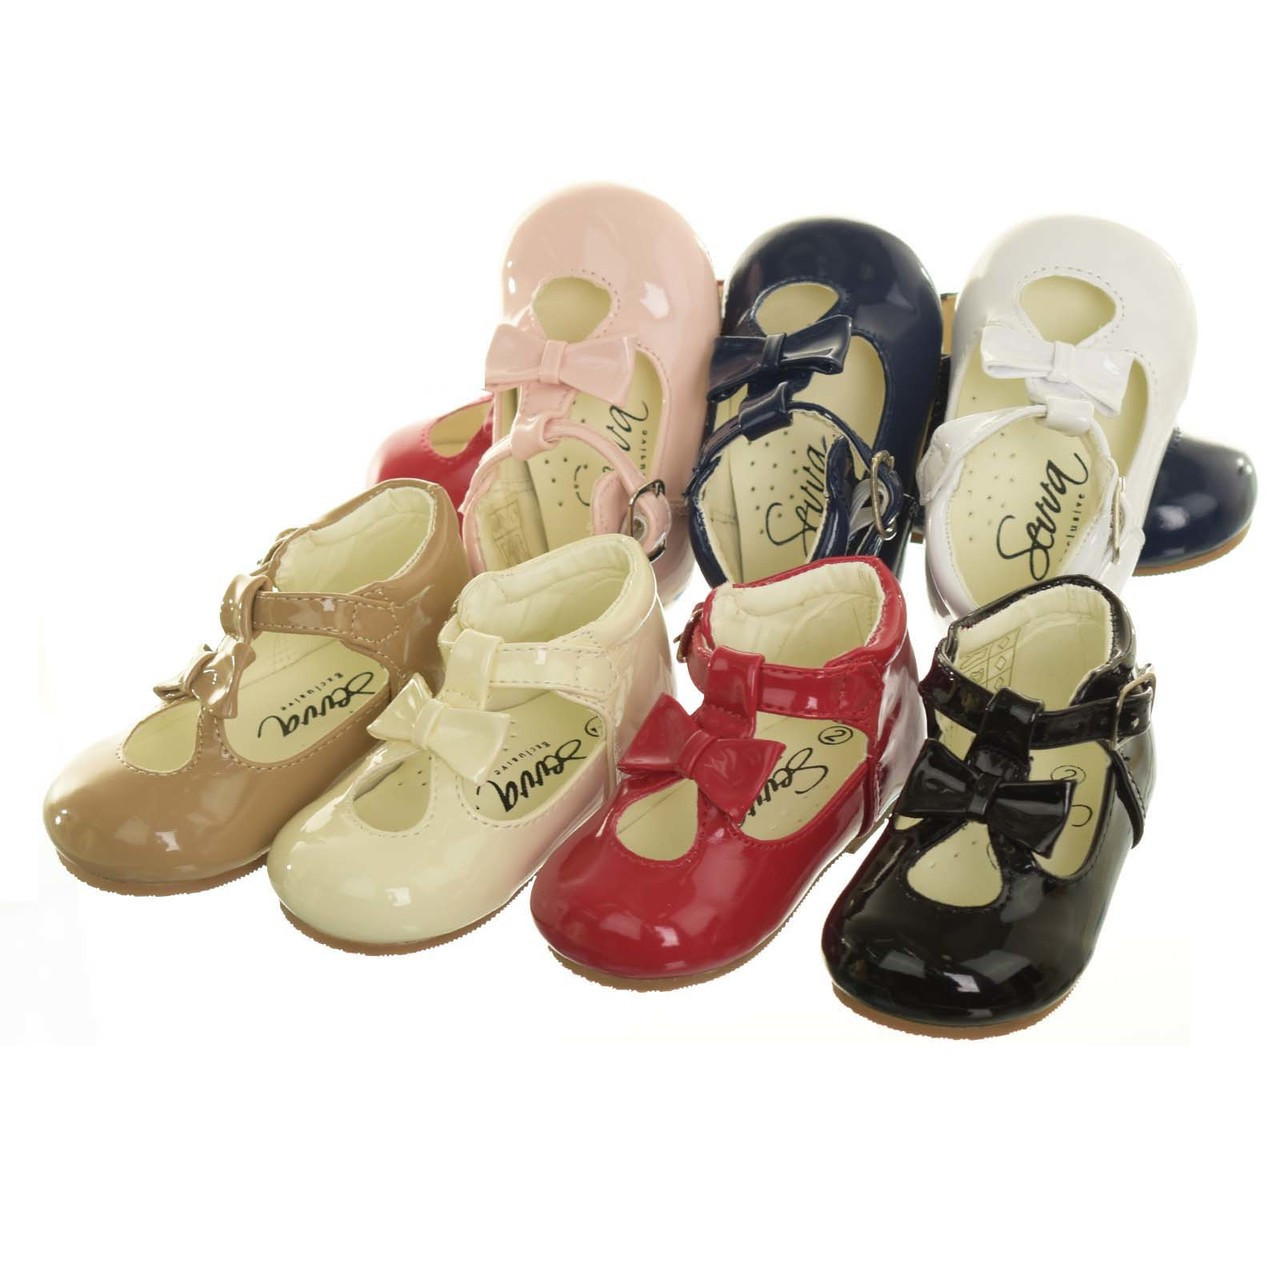 4c36aa45a333 SEVVA Baby Infant Girls Spanish Style Patent Walking Shoes Bow